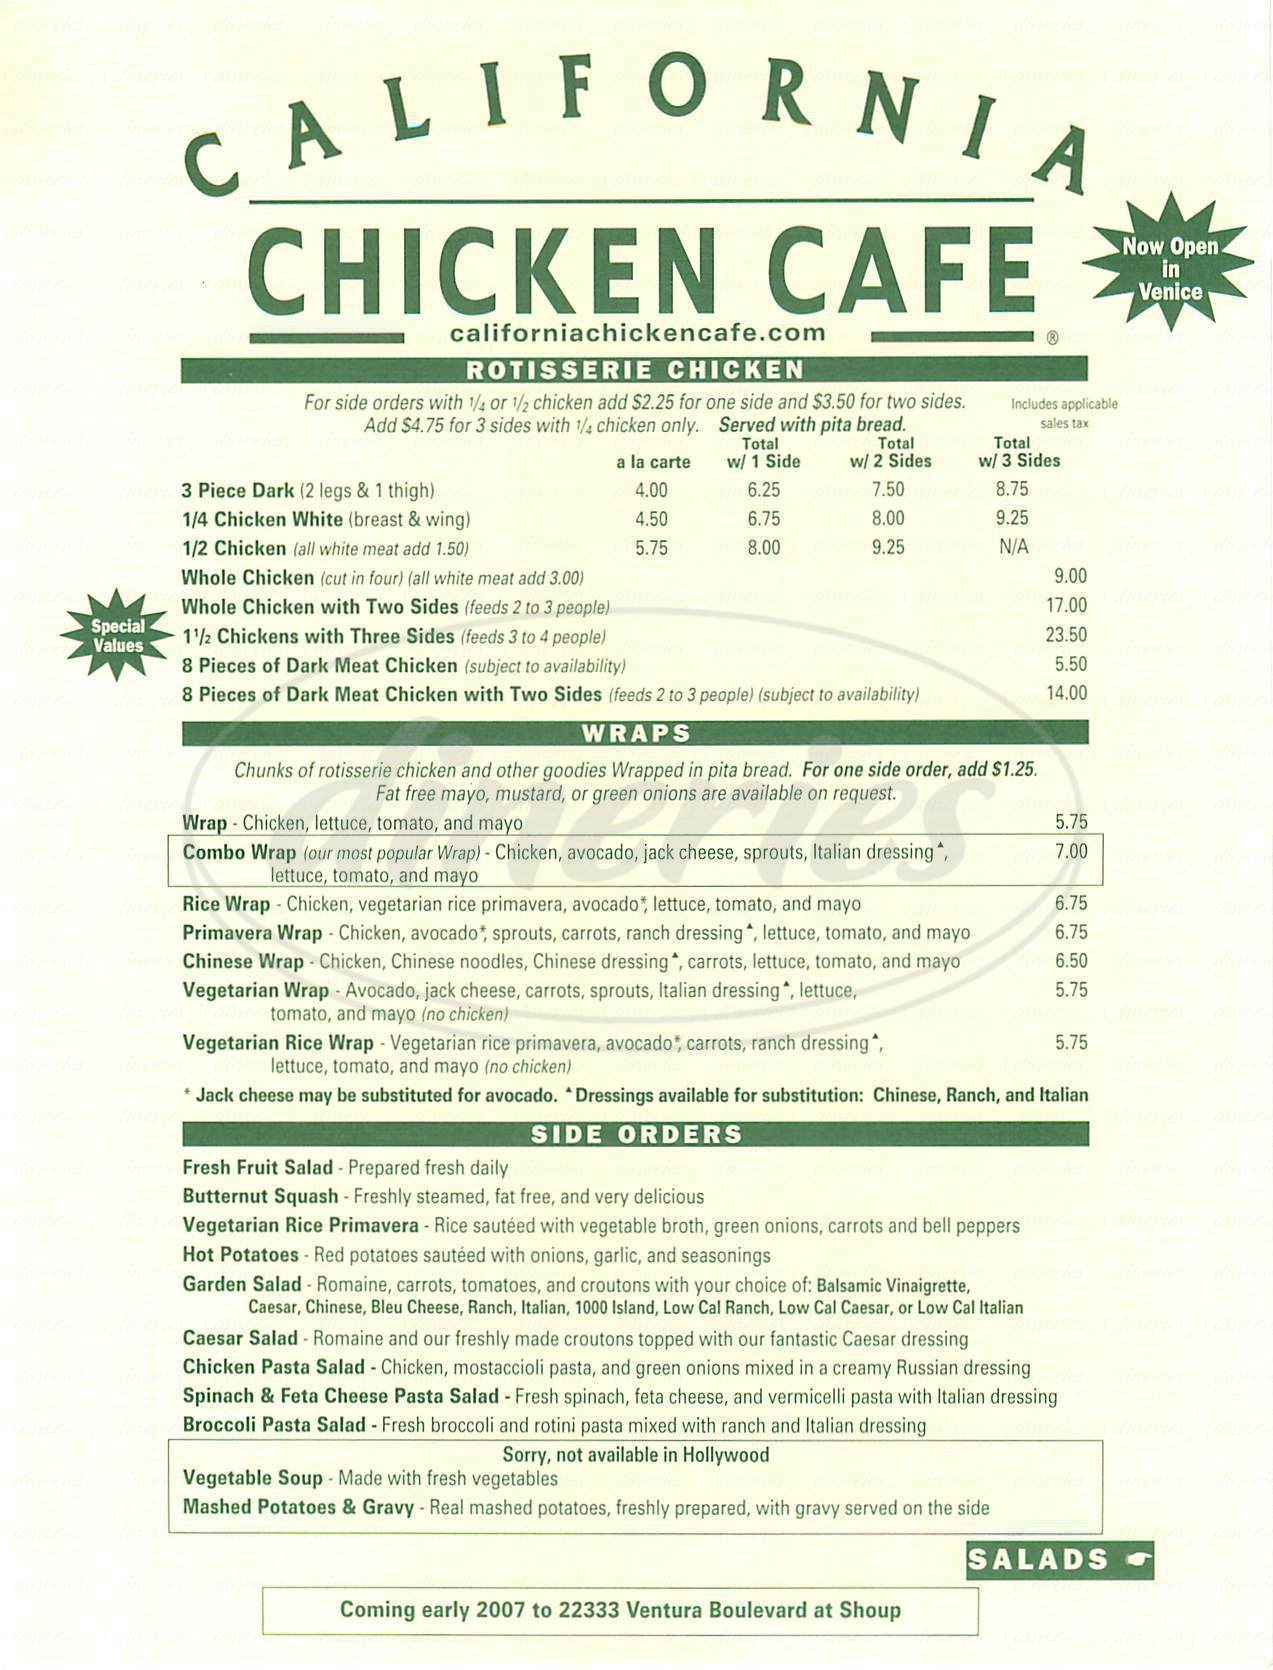 menu for California Chicken Café